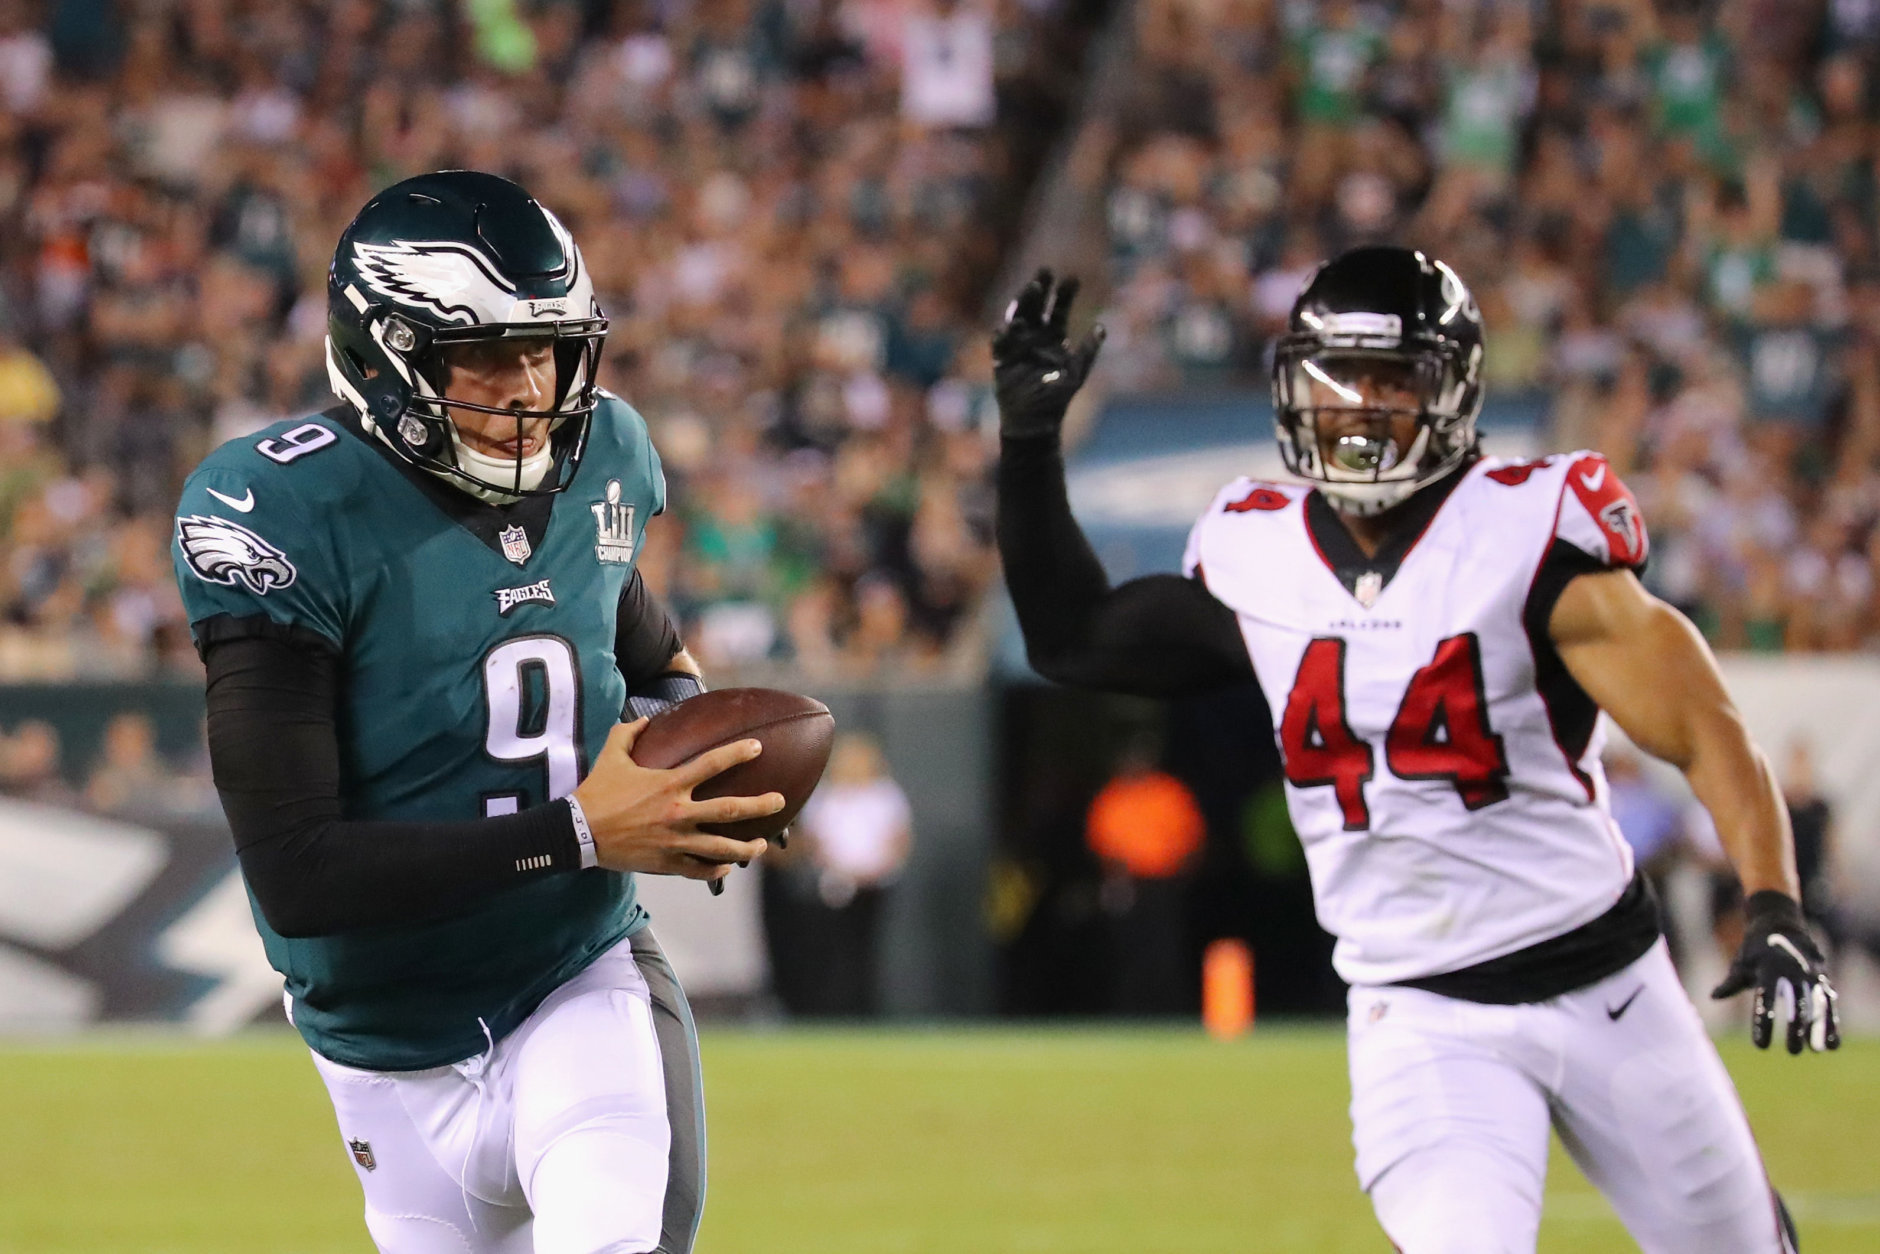 PHILADELPHIA, PA - SEPTEMBER 06:  Nick Foles #9 of the Philadelphia Eagles catches a pass thrown by Nelson Agholor #13 (not pictured) during the third quarter against the Atlanta Falcons at Lincoln Financial Field on September 6, 2018 in Philadelphia, Pennsylvania.  (Photo by Brett Carlsen/Getty Images)